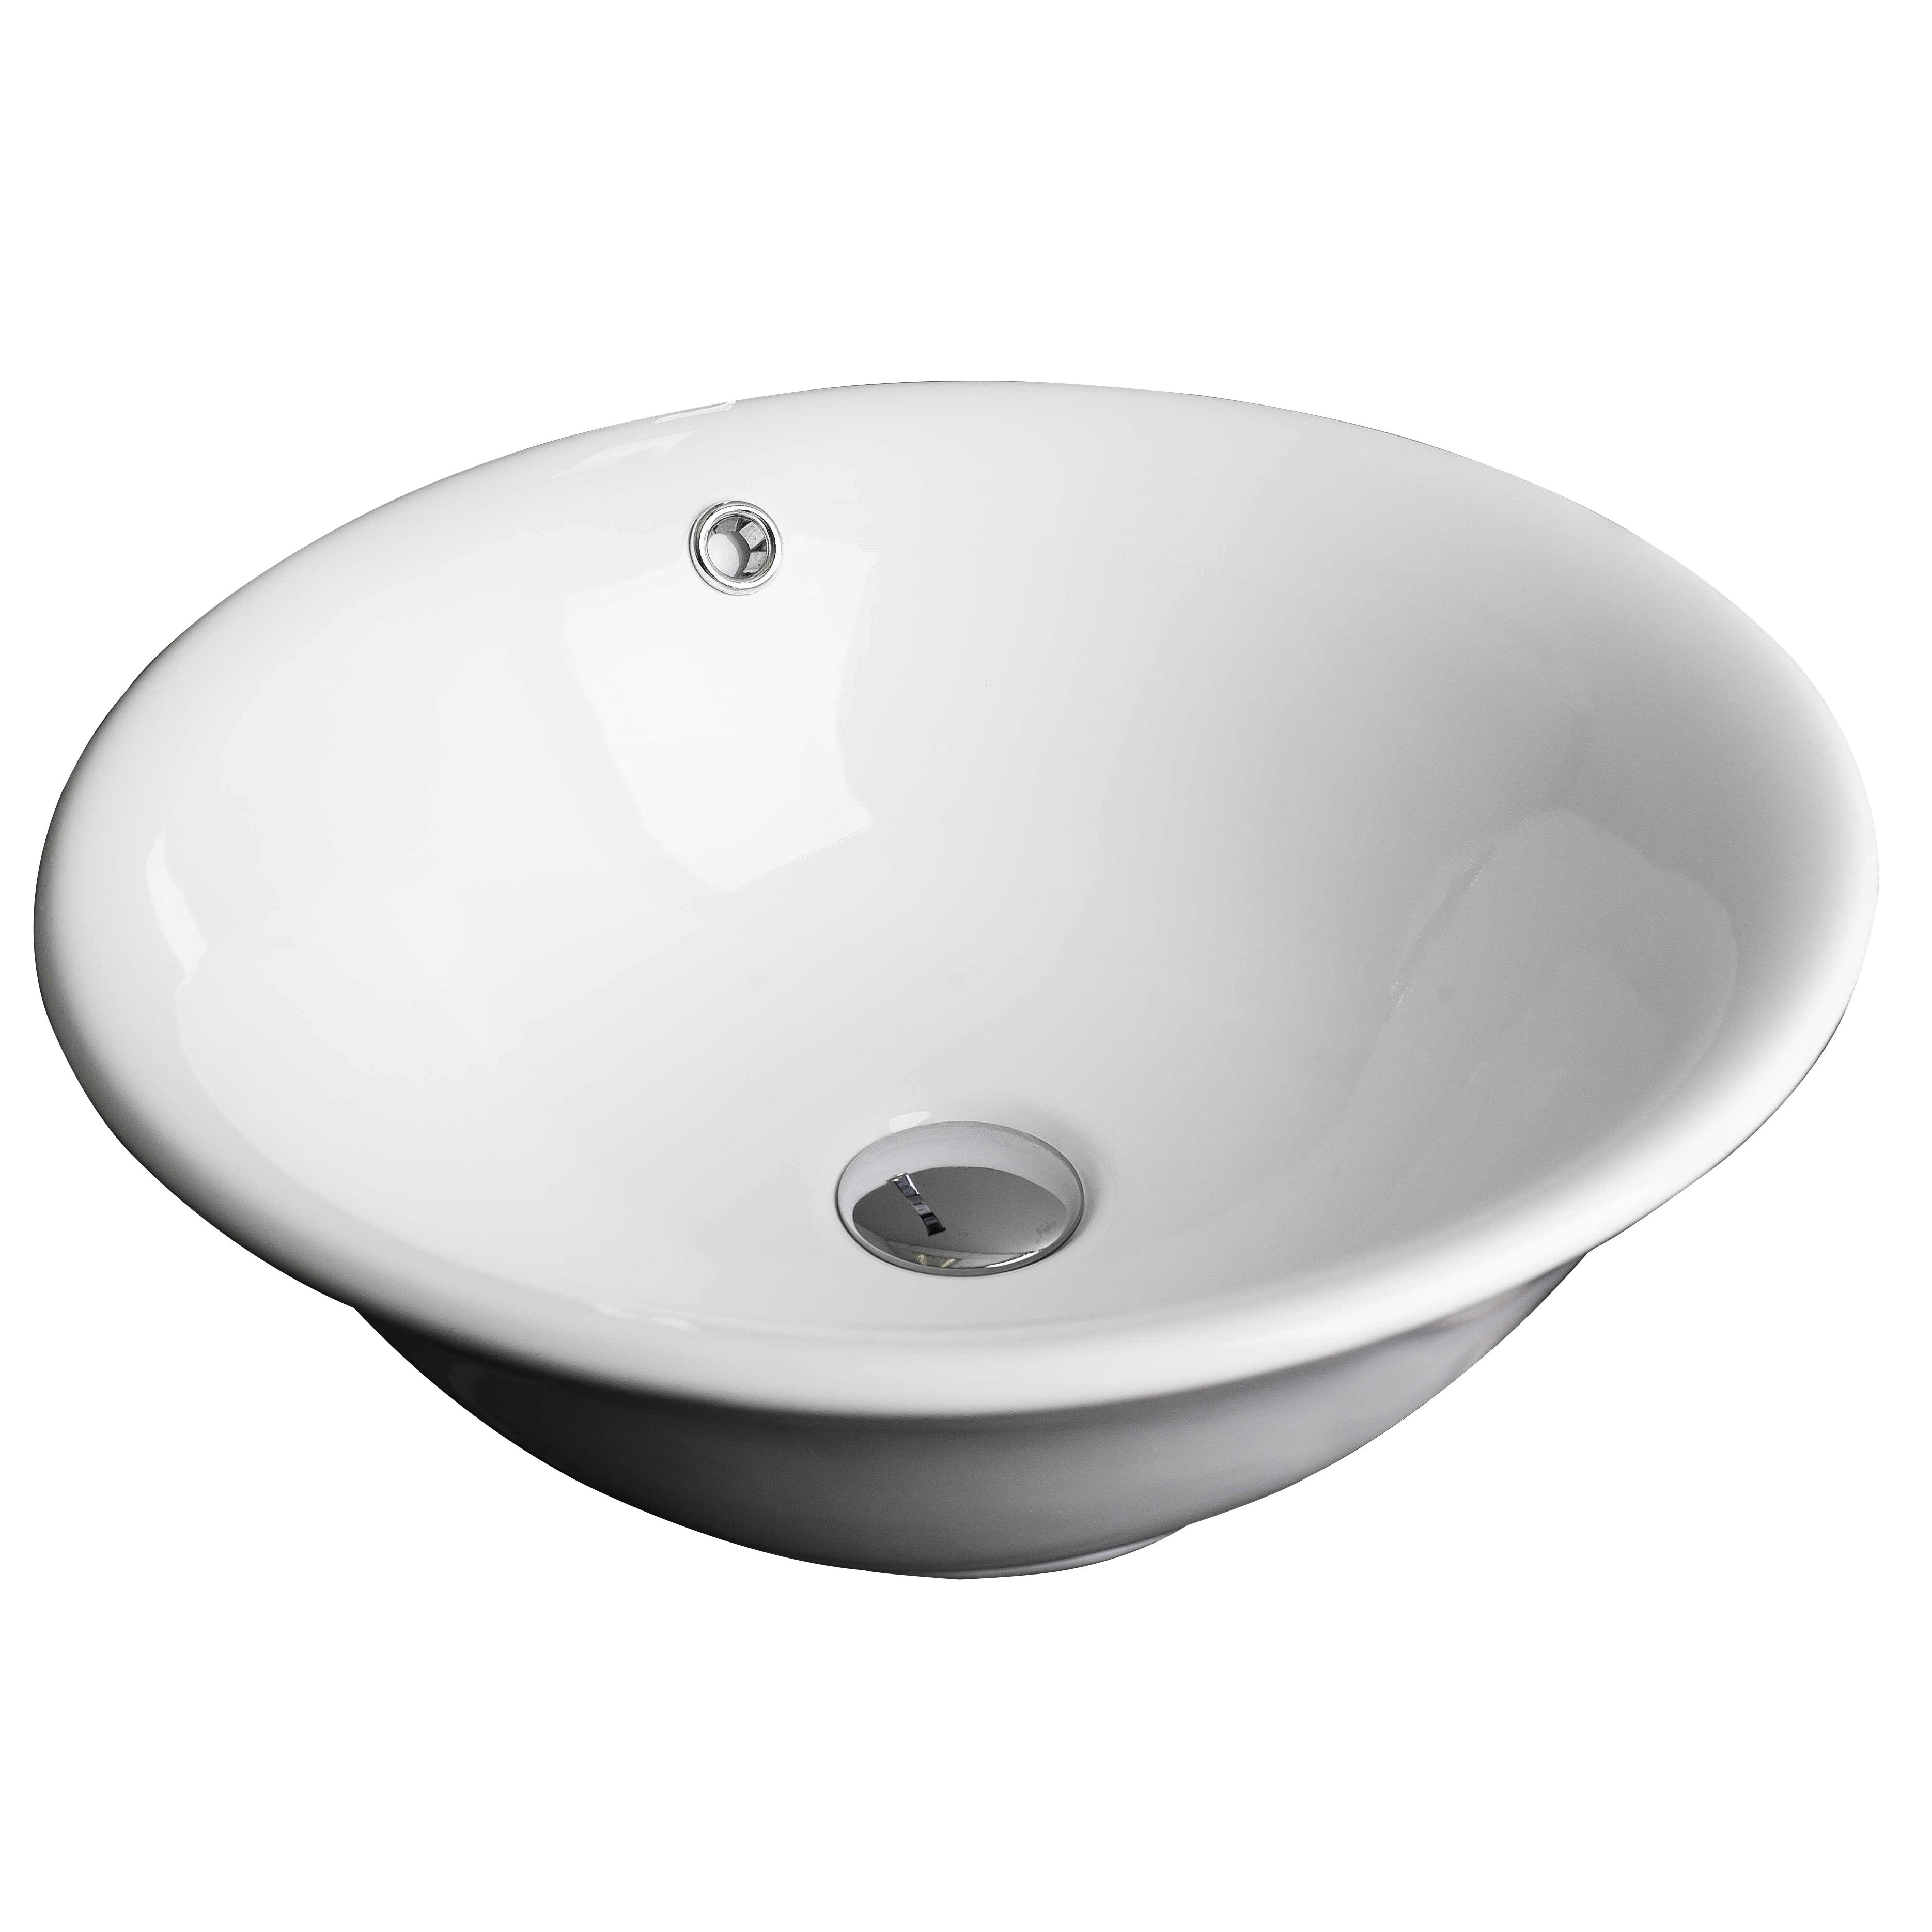 American imaginations wall mount above counter round vessel sink with overflow wayfair for Above counter bathroom sinks glass